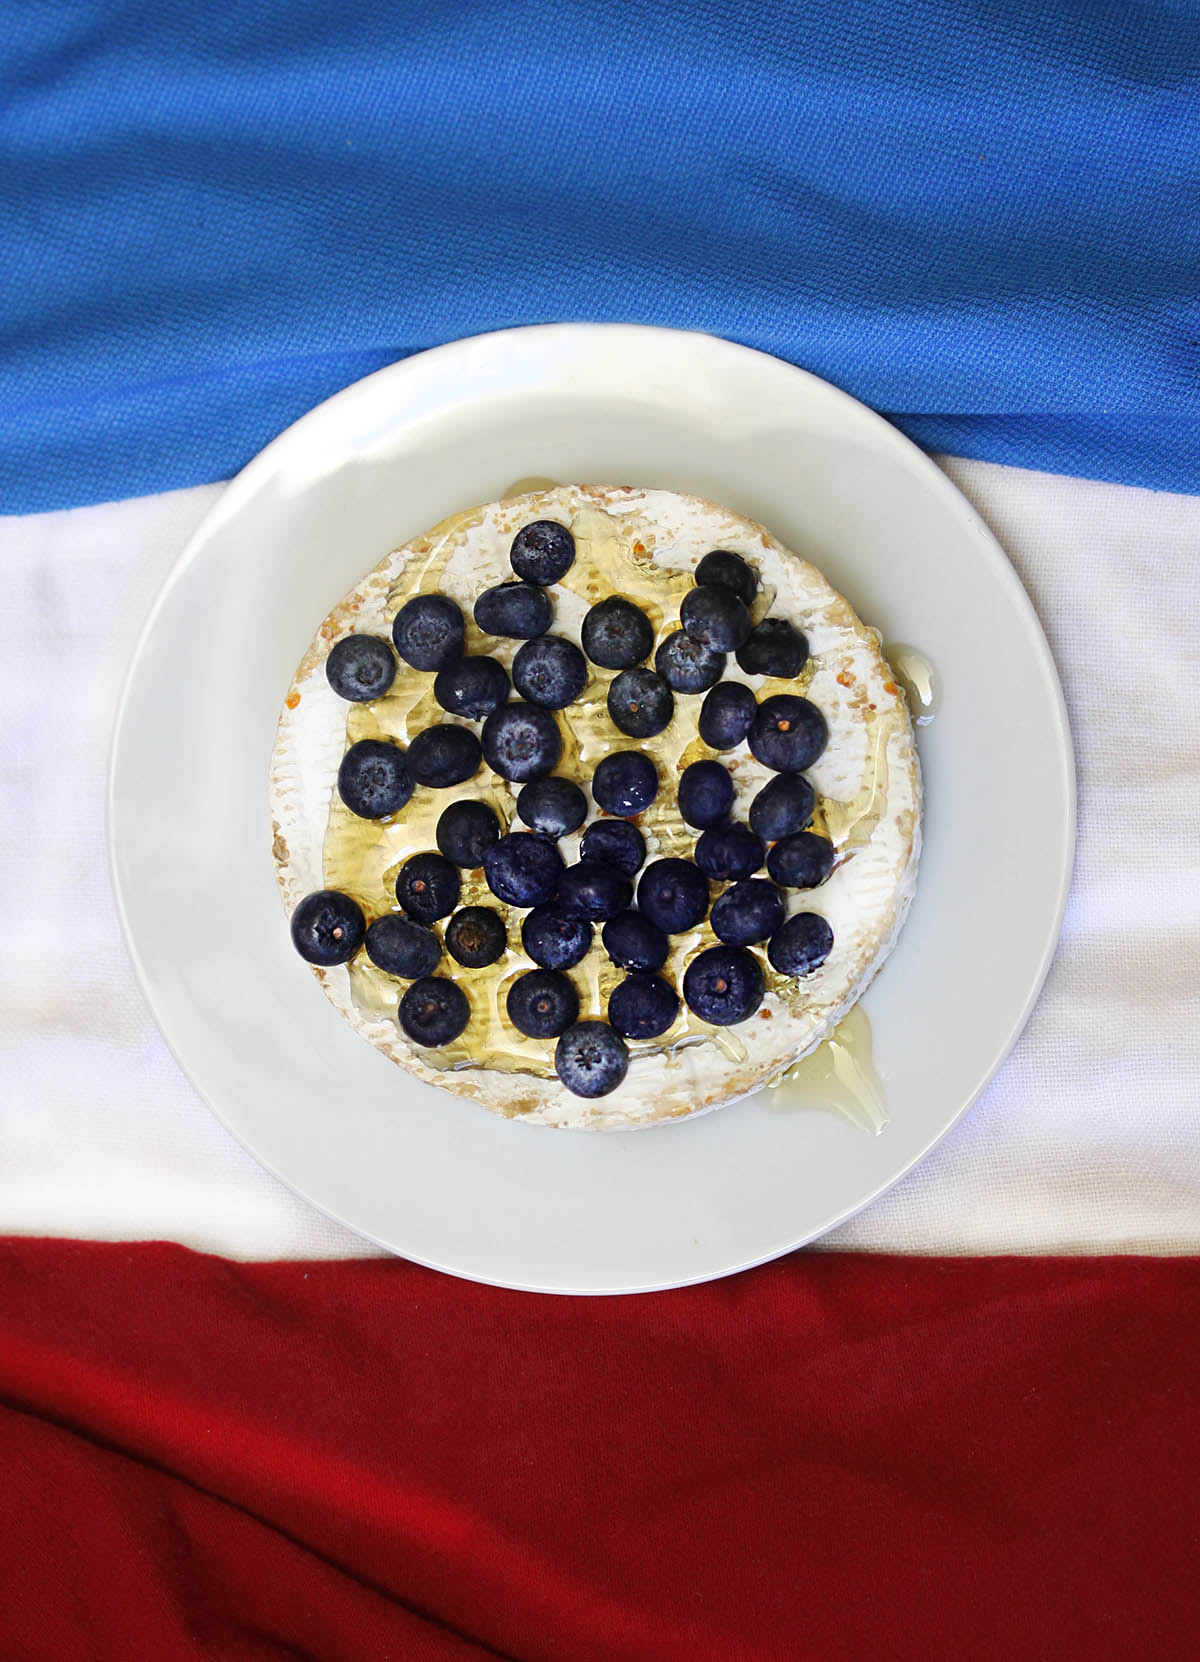 Baked French Brie Cheese with Honey and Blueberries